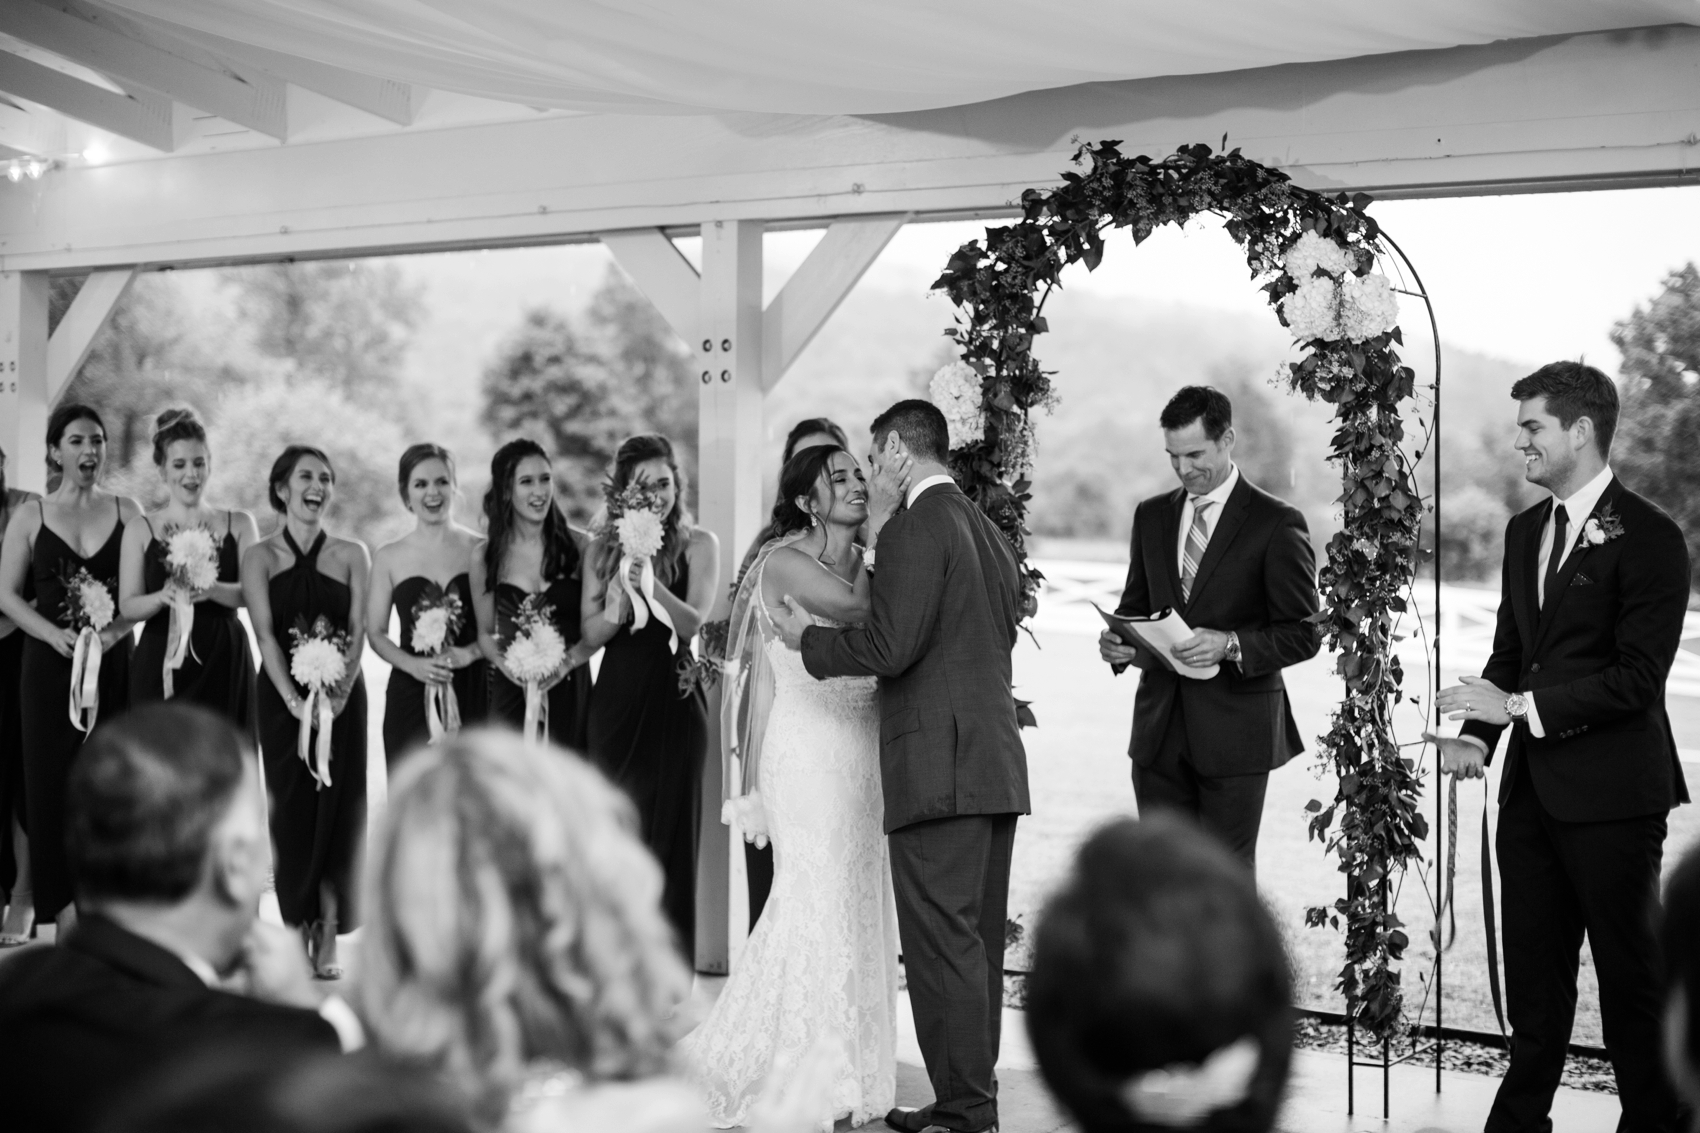 Ashlawn-Highland-Virginia-Wedding-2018-0182.jpg